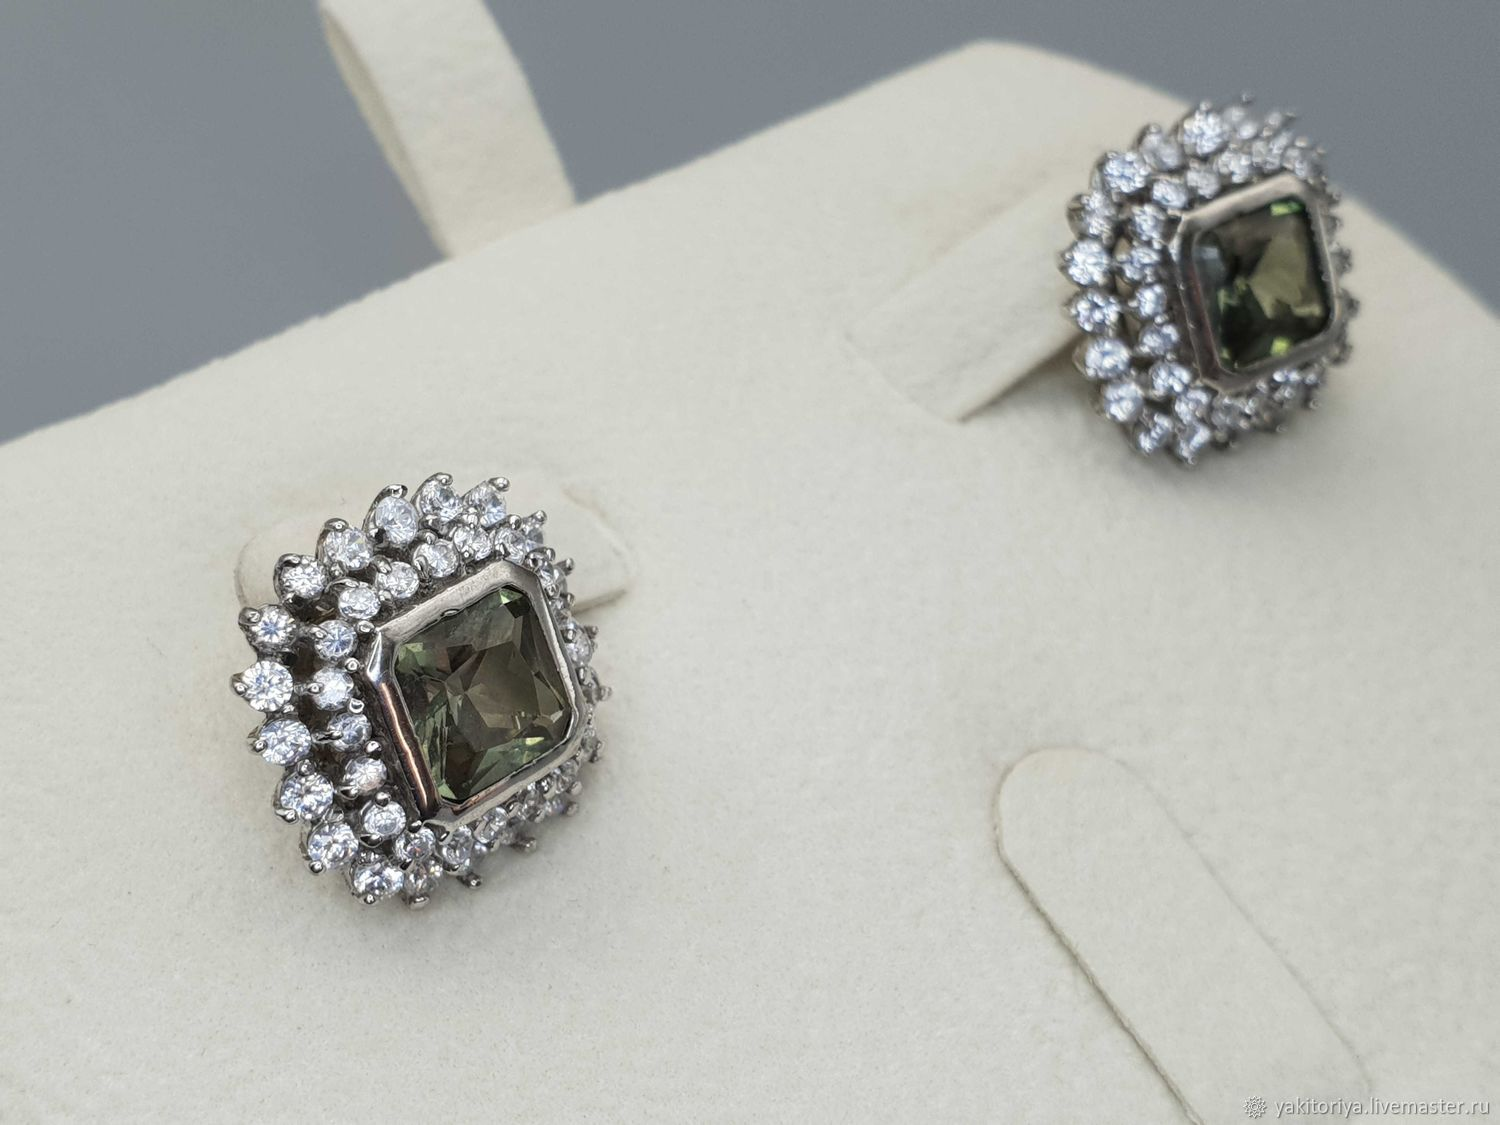 Silver earrings with 7h7 mm chrysolite and cubic zirconia, Earrings, Moscow,  Фото №1